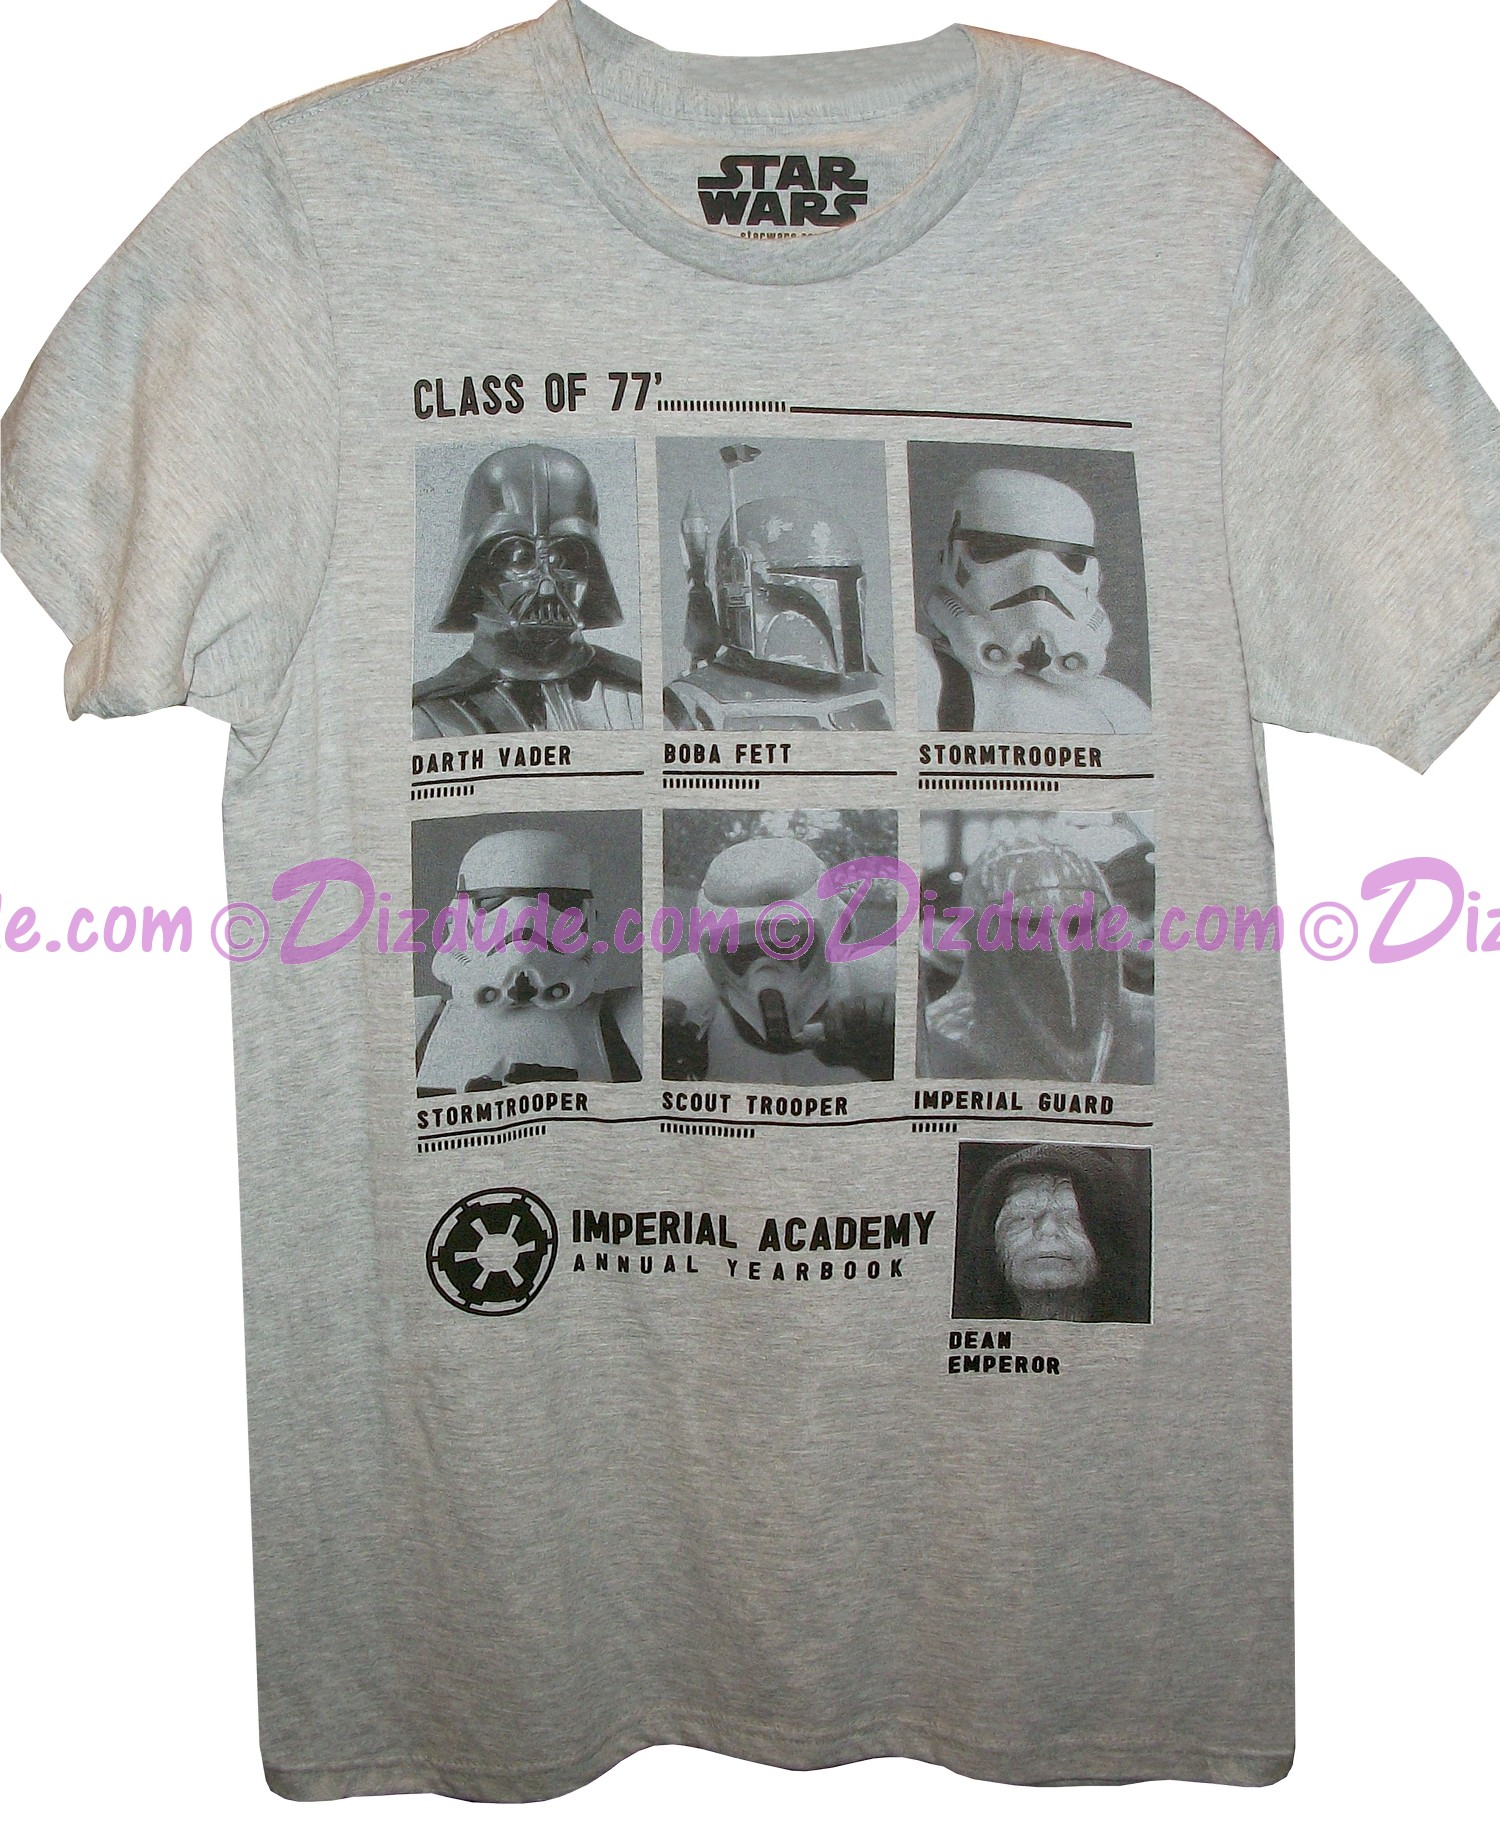 Disney Star Wars Class of 77' Adult T-shirt